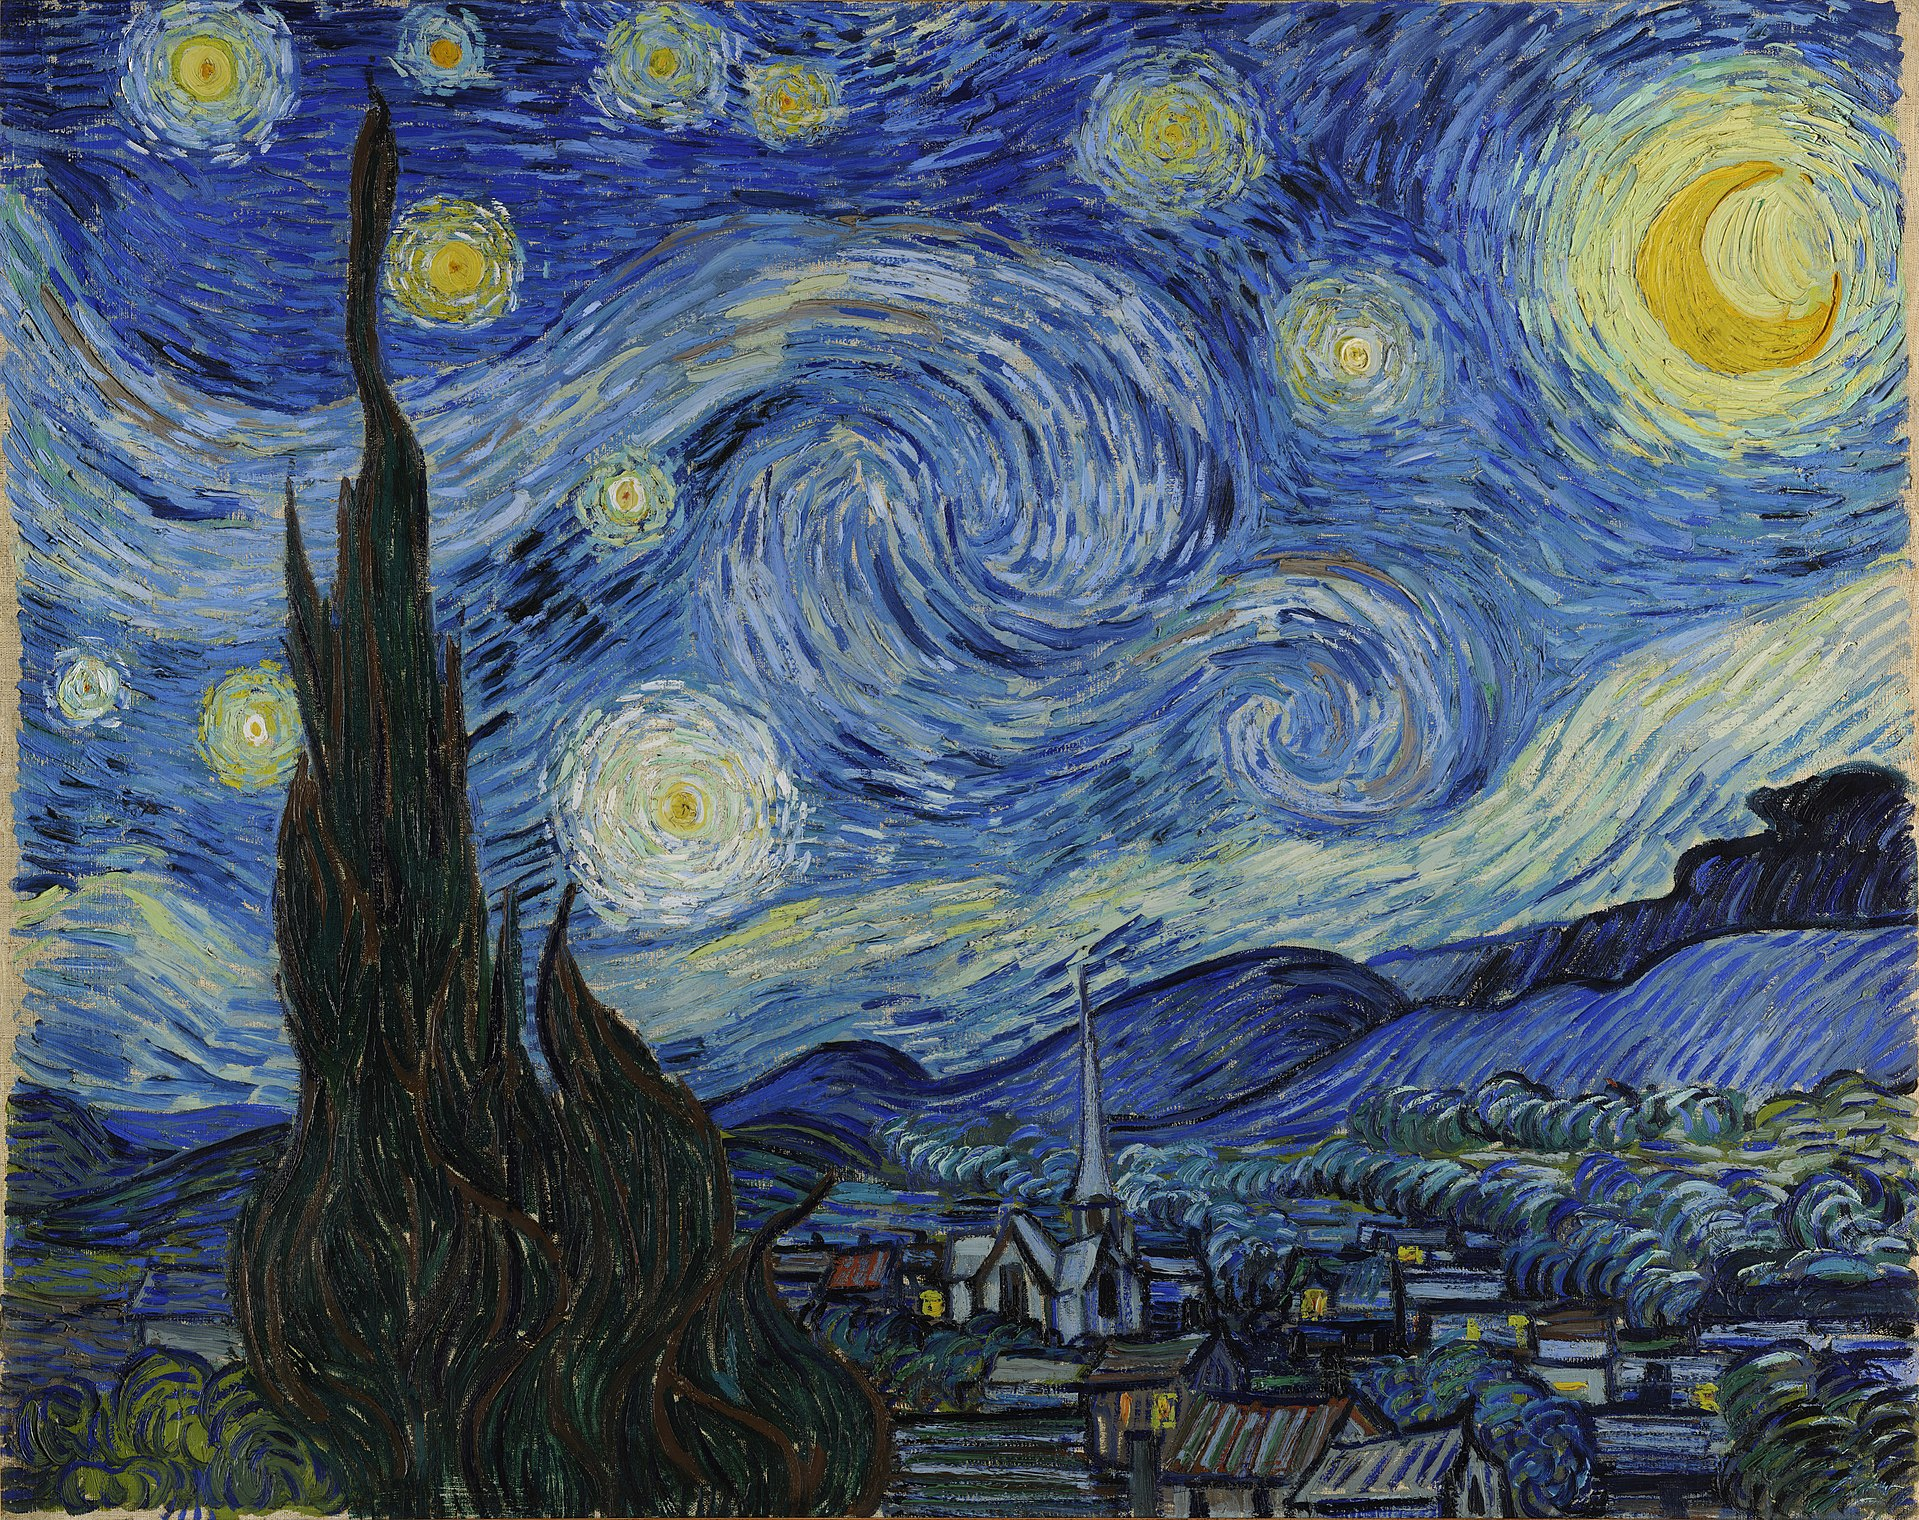 Van Gogh's 'The Starry Night', all swirls and spires.